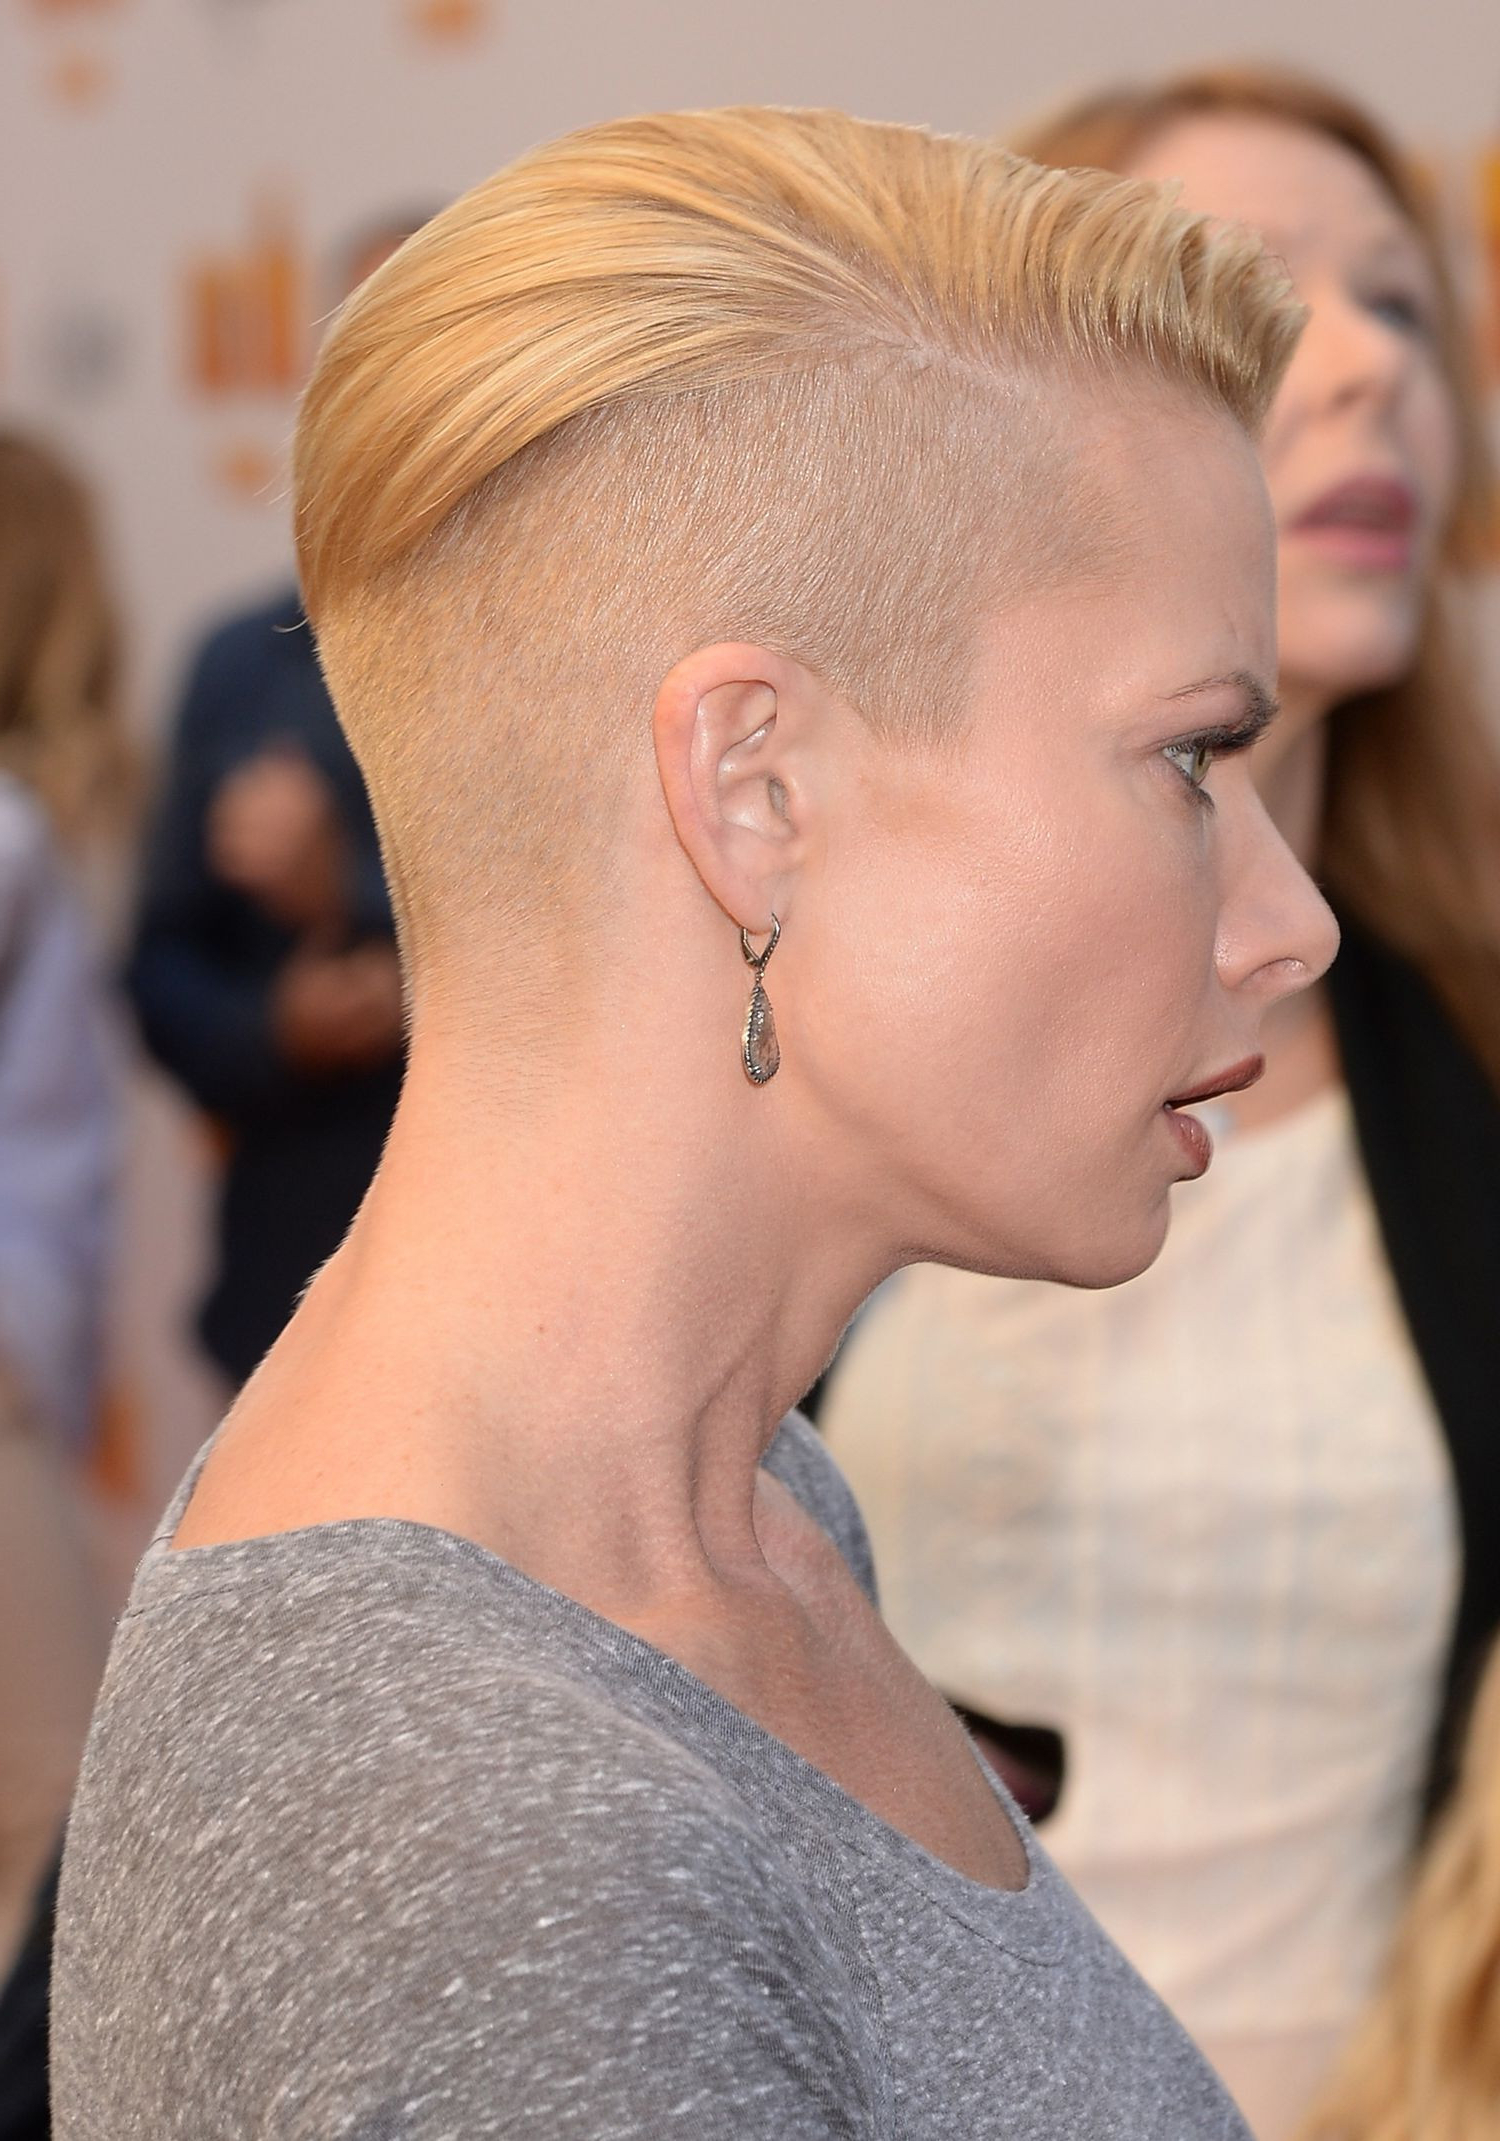 Pictures On Short Hairstyles With Side Shaved, – Curly Hairstyles For Short Hairstyles One Side Shaved (View 23 of 25)